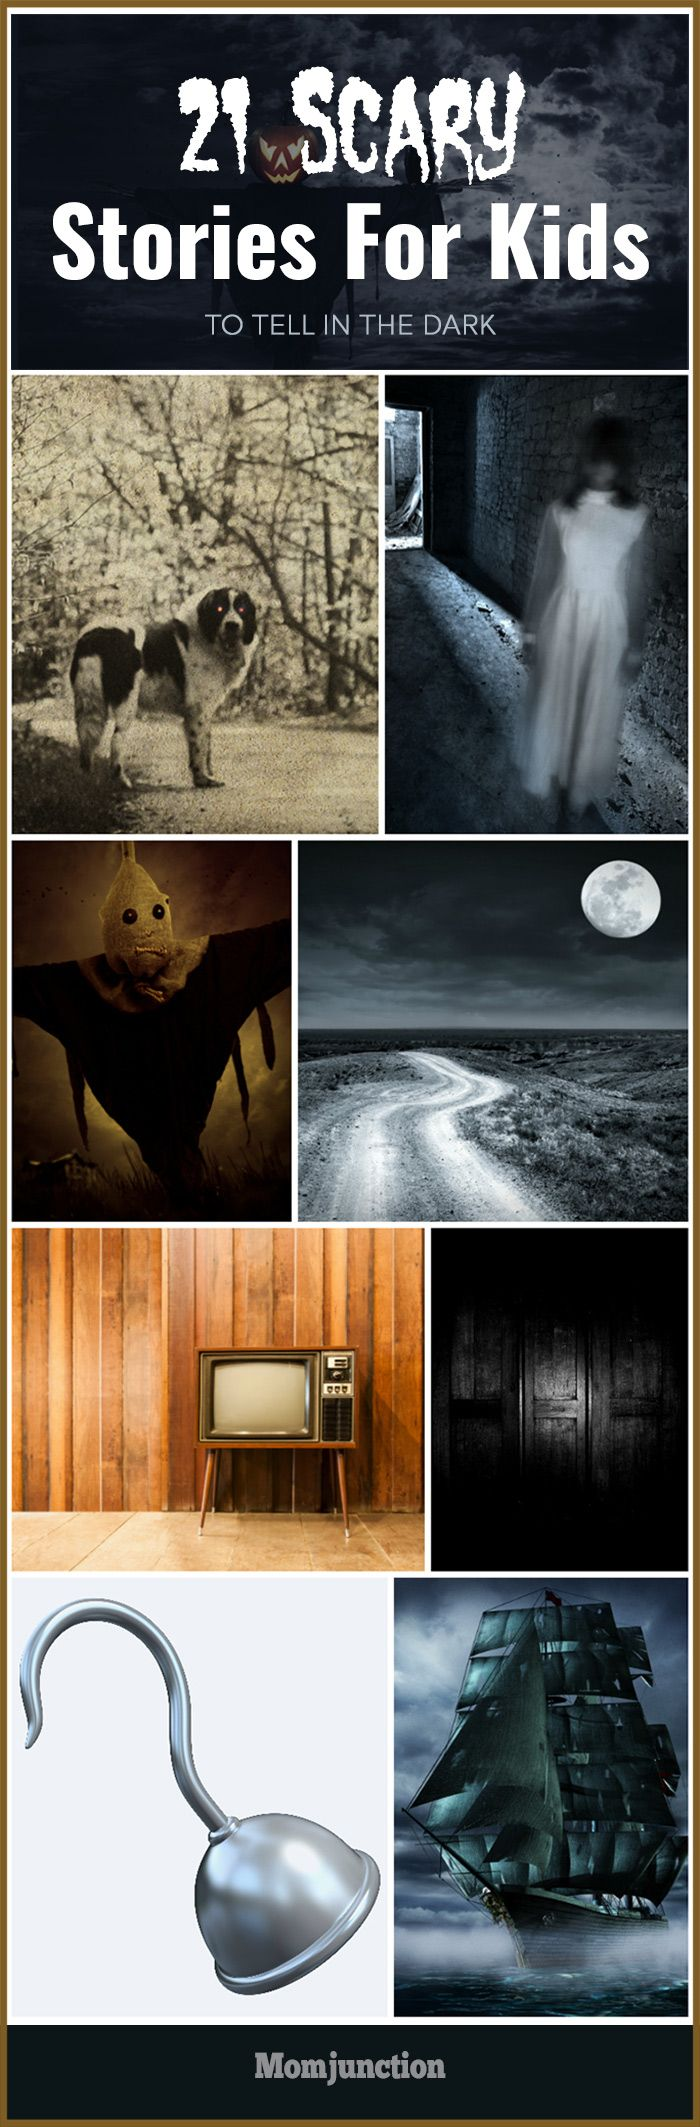 21 Scary Stories For Kids To Tell In The Dark